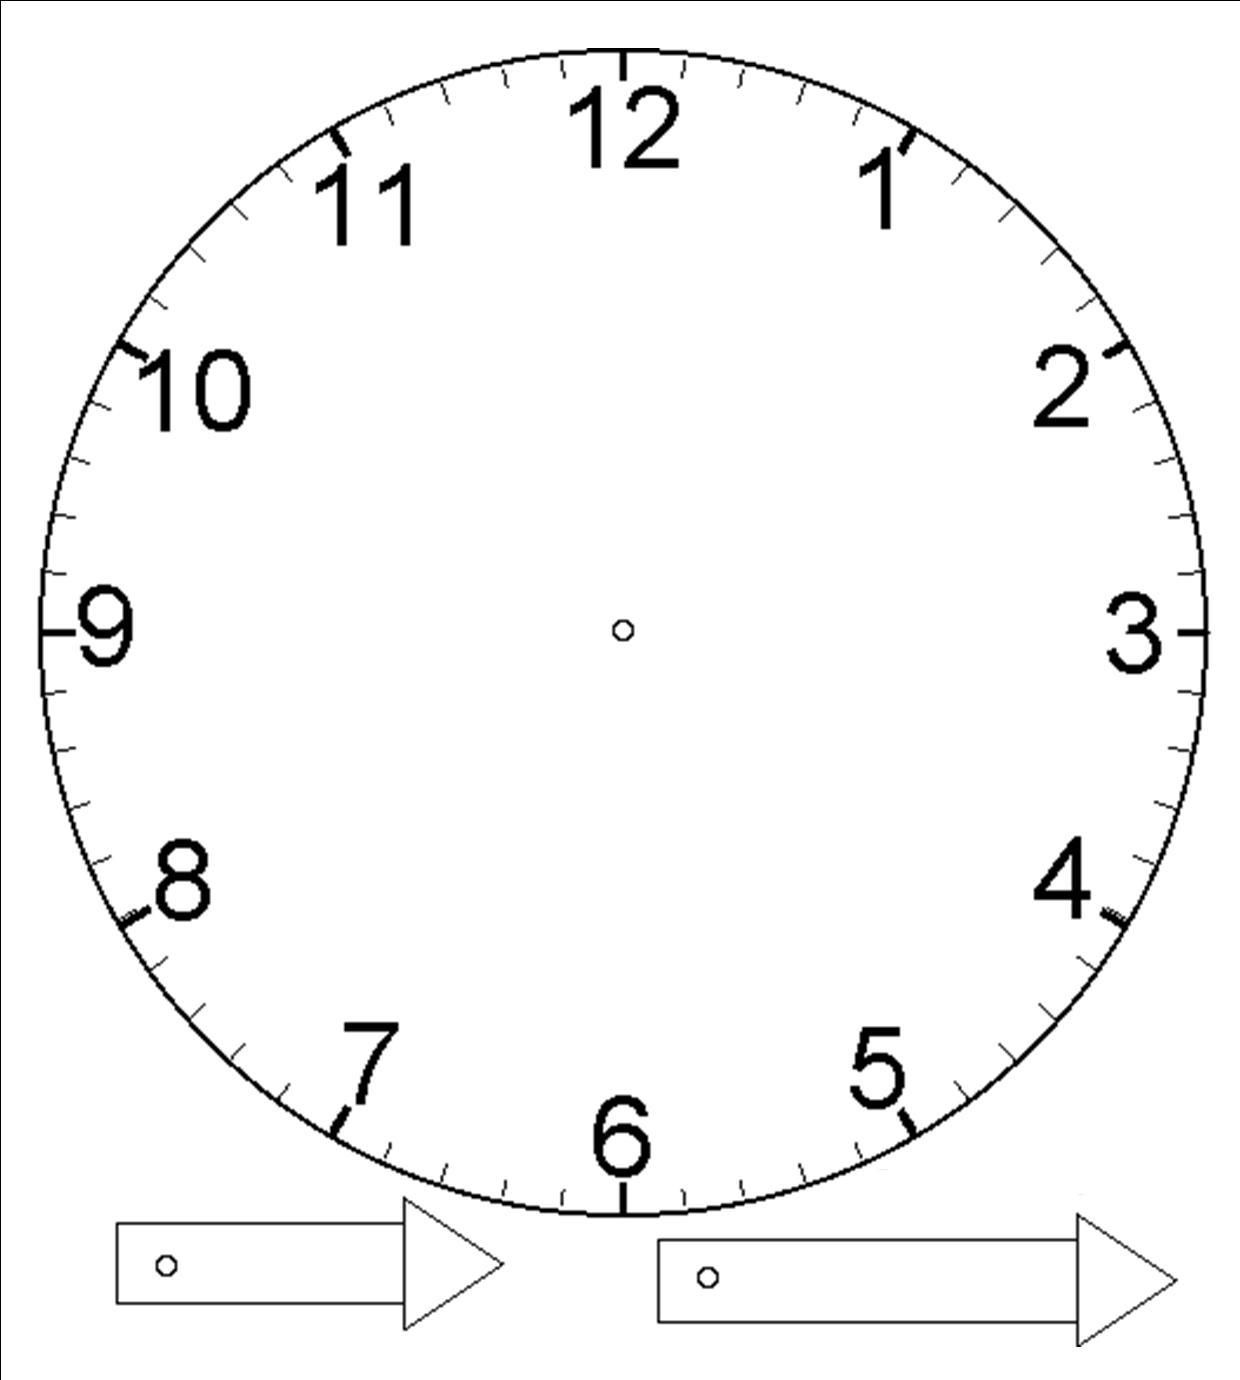 image regarding Printable Clock Face With Hands named Pin upon Kindergarten Math Period